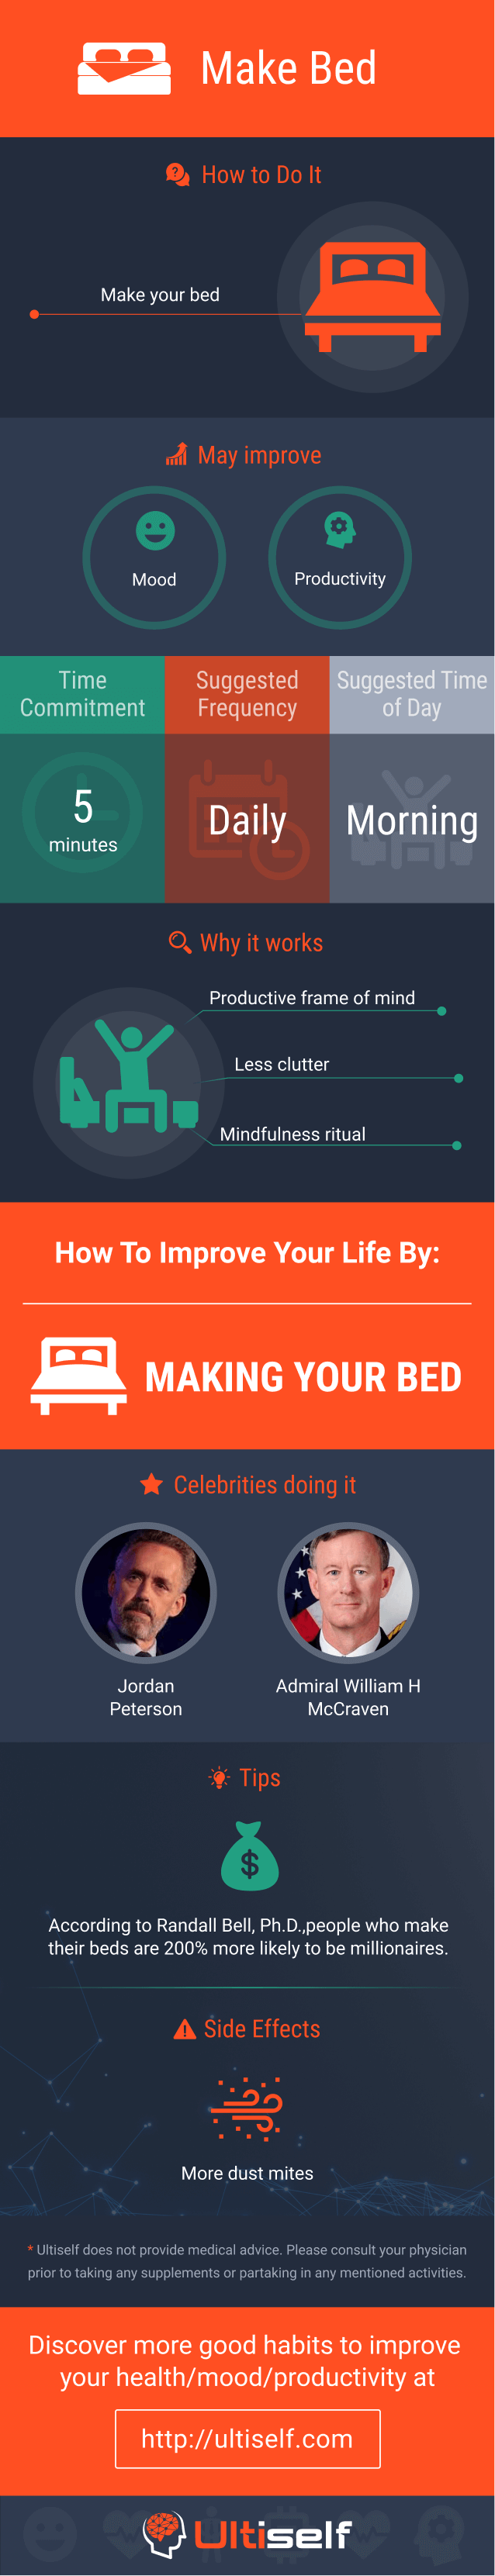 Make Bed infographic